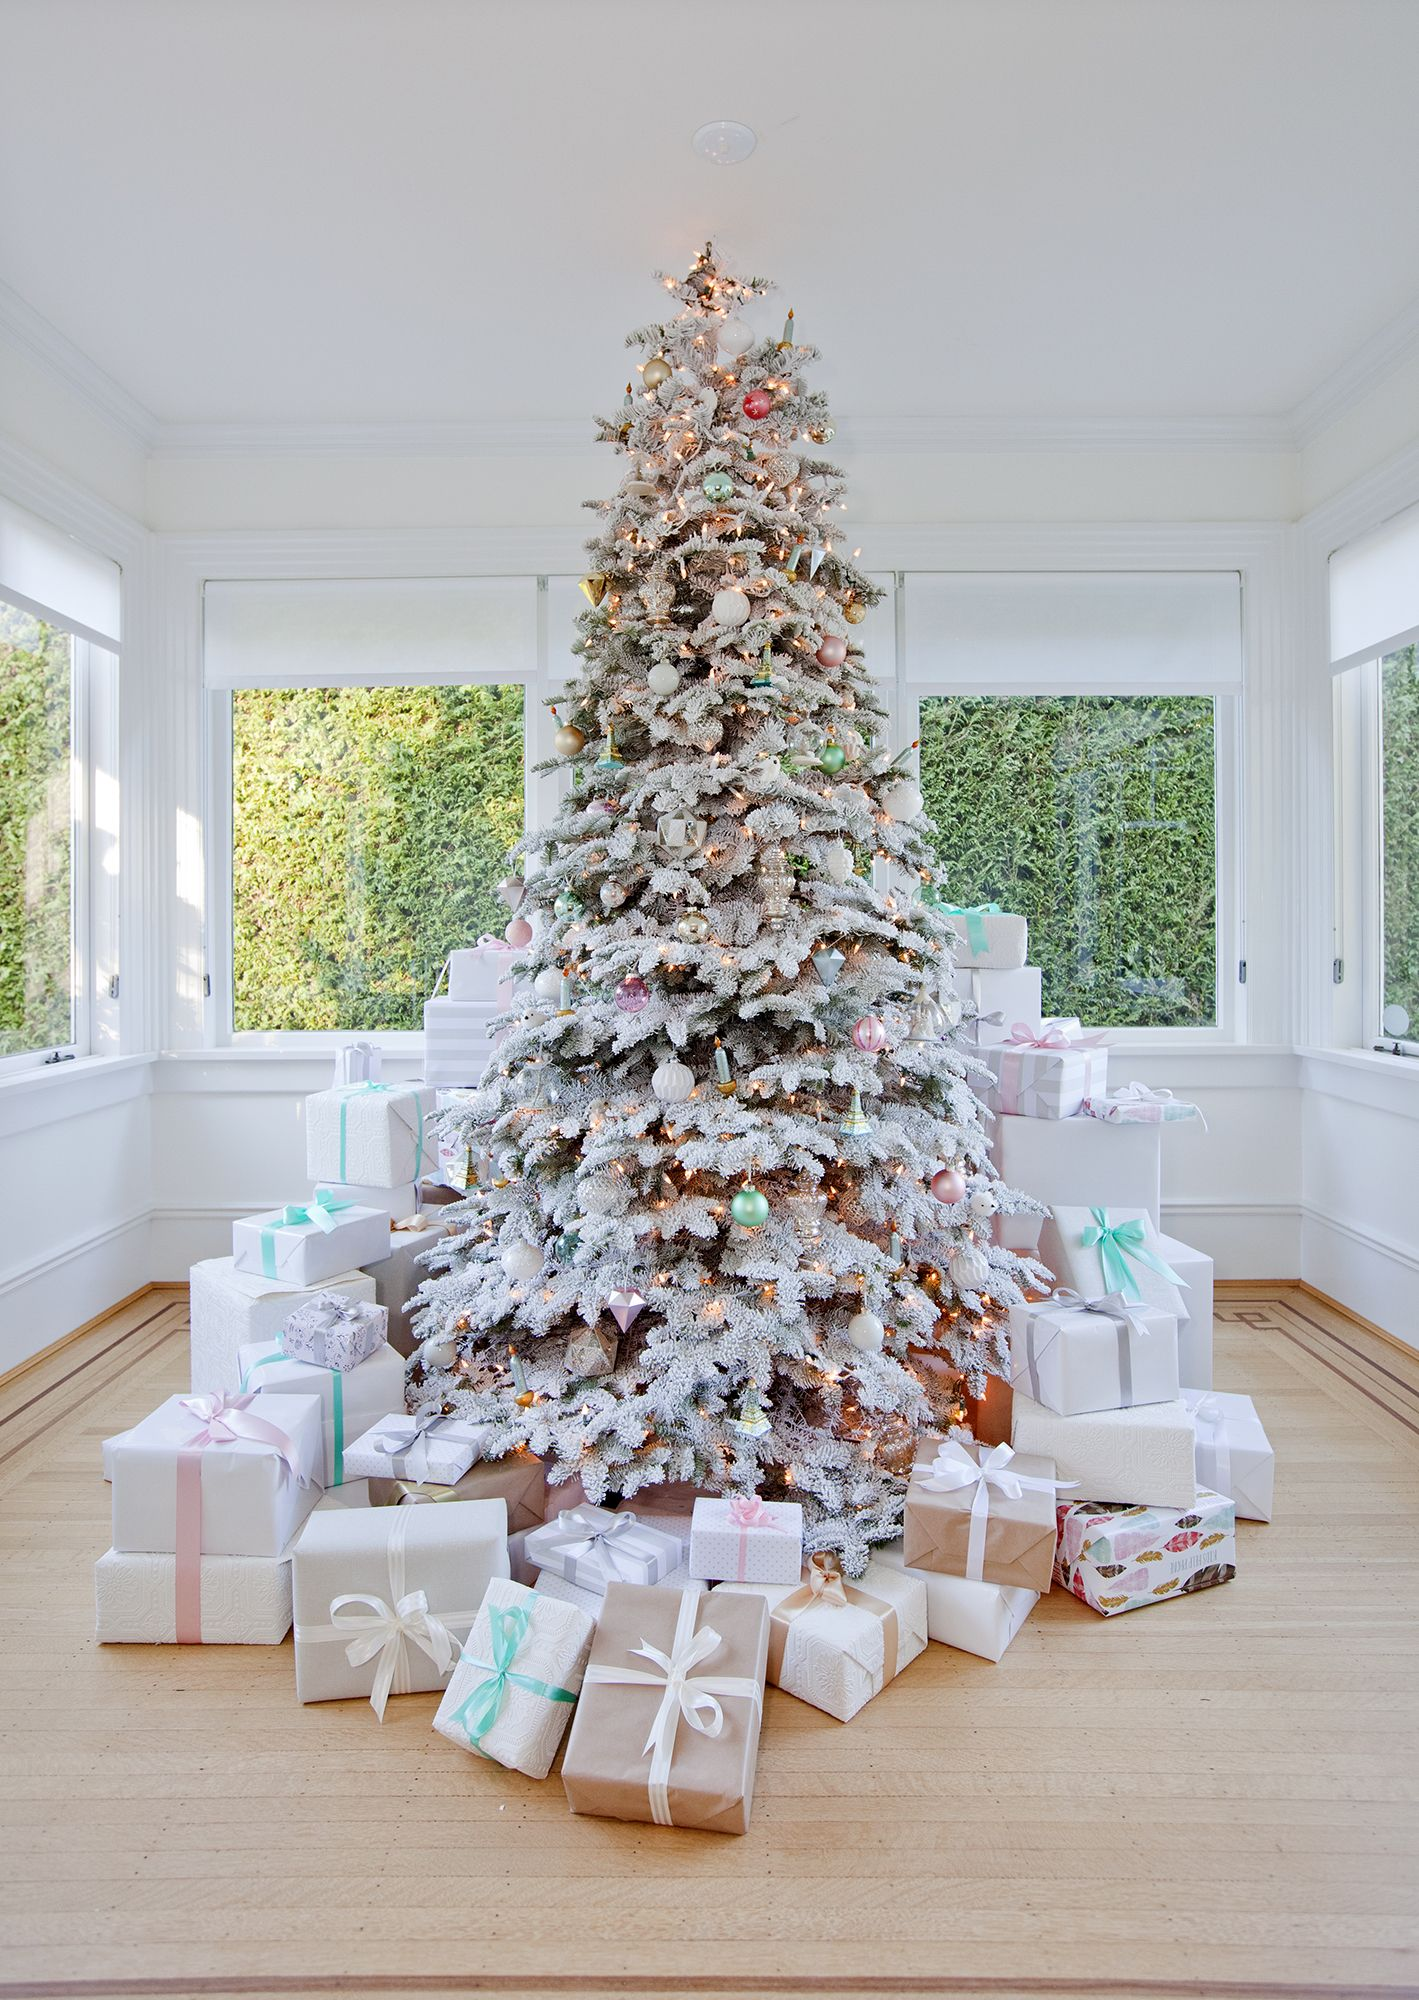 stunning christmas tree ideas 2018 best christmas tree decorating tips - Decorating With Silver And Gold For Christmas